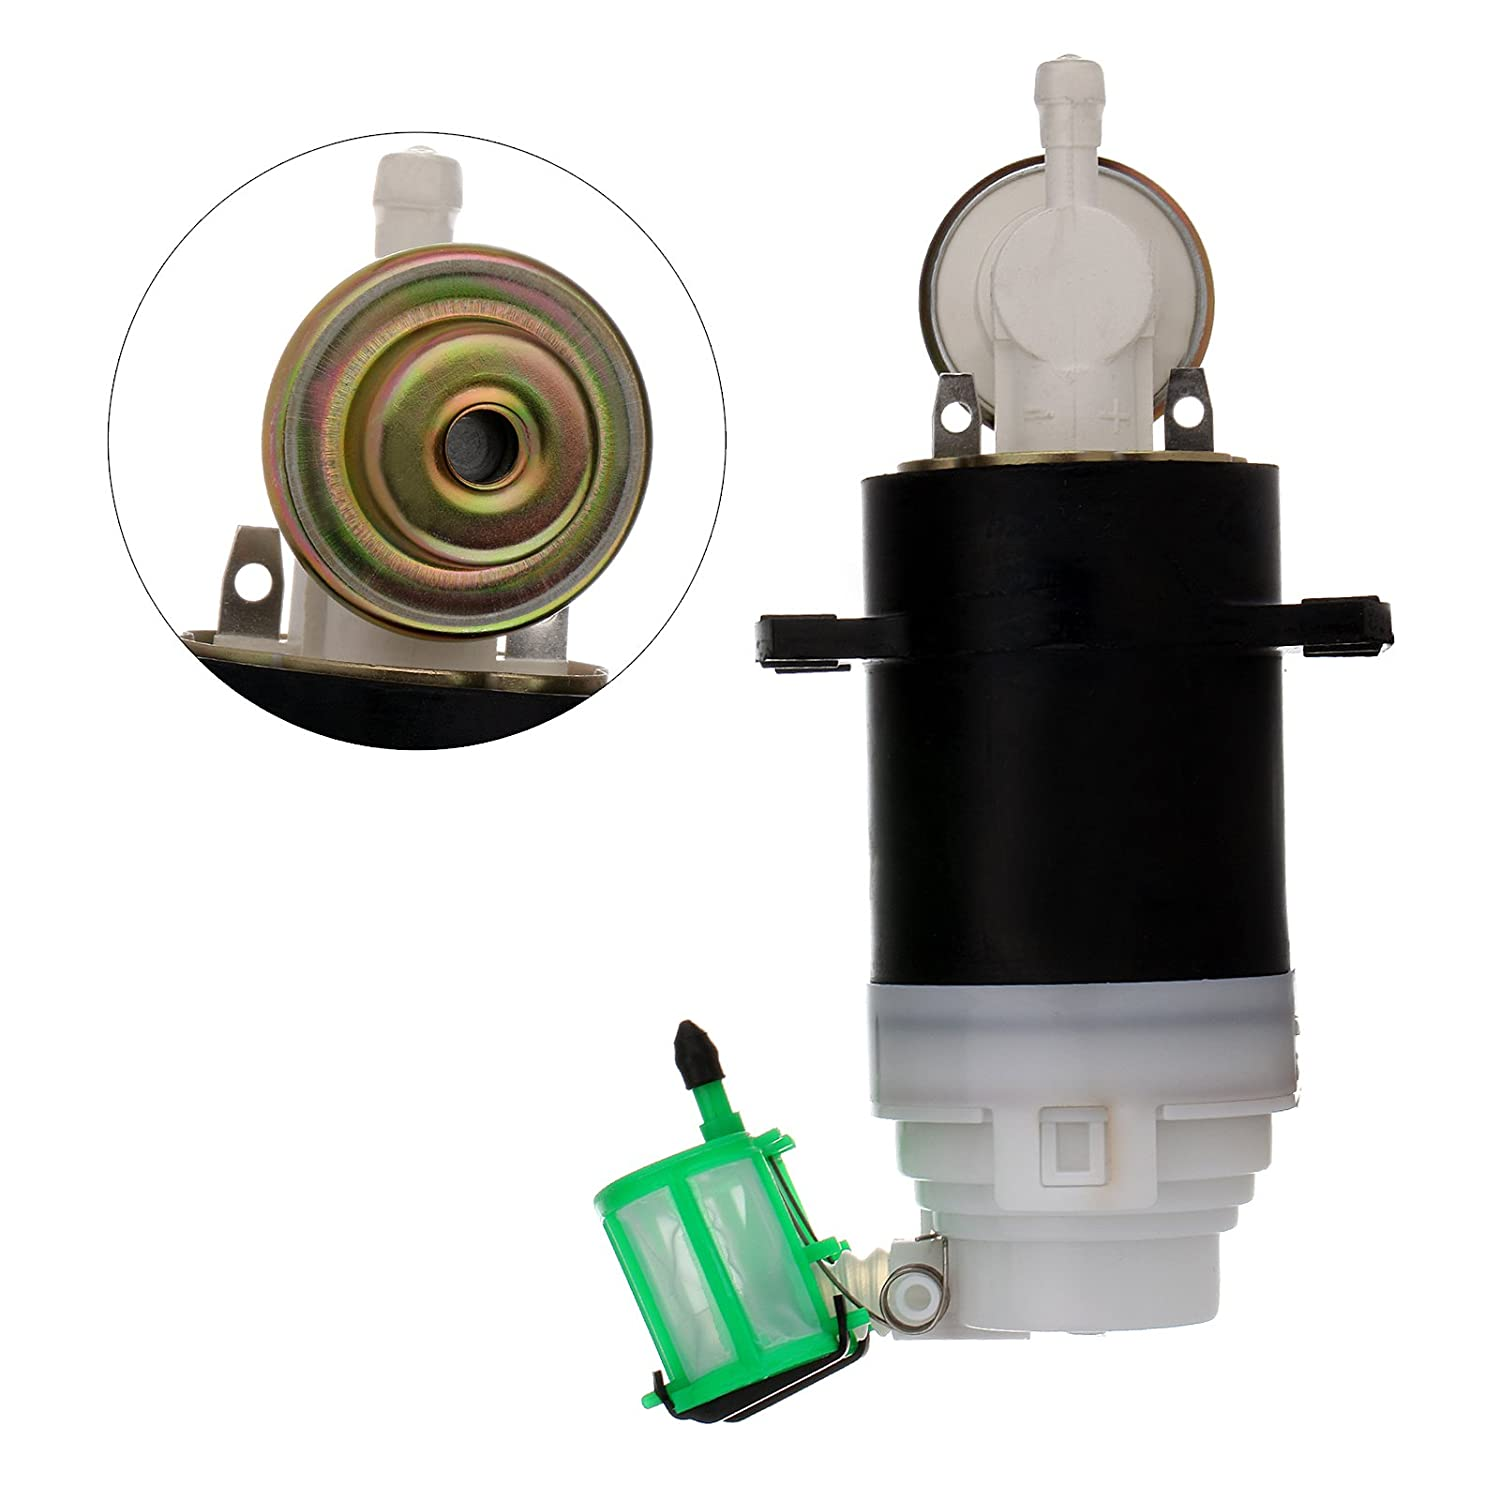 SCITOO P72069 Fuel Pump Electrical Assembly High Performance fit Nissan D21 Pickup 065161-5206-2154291